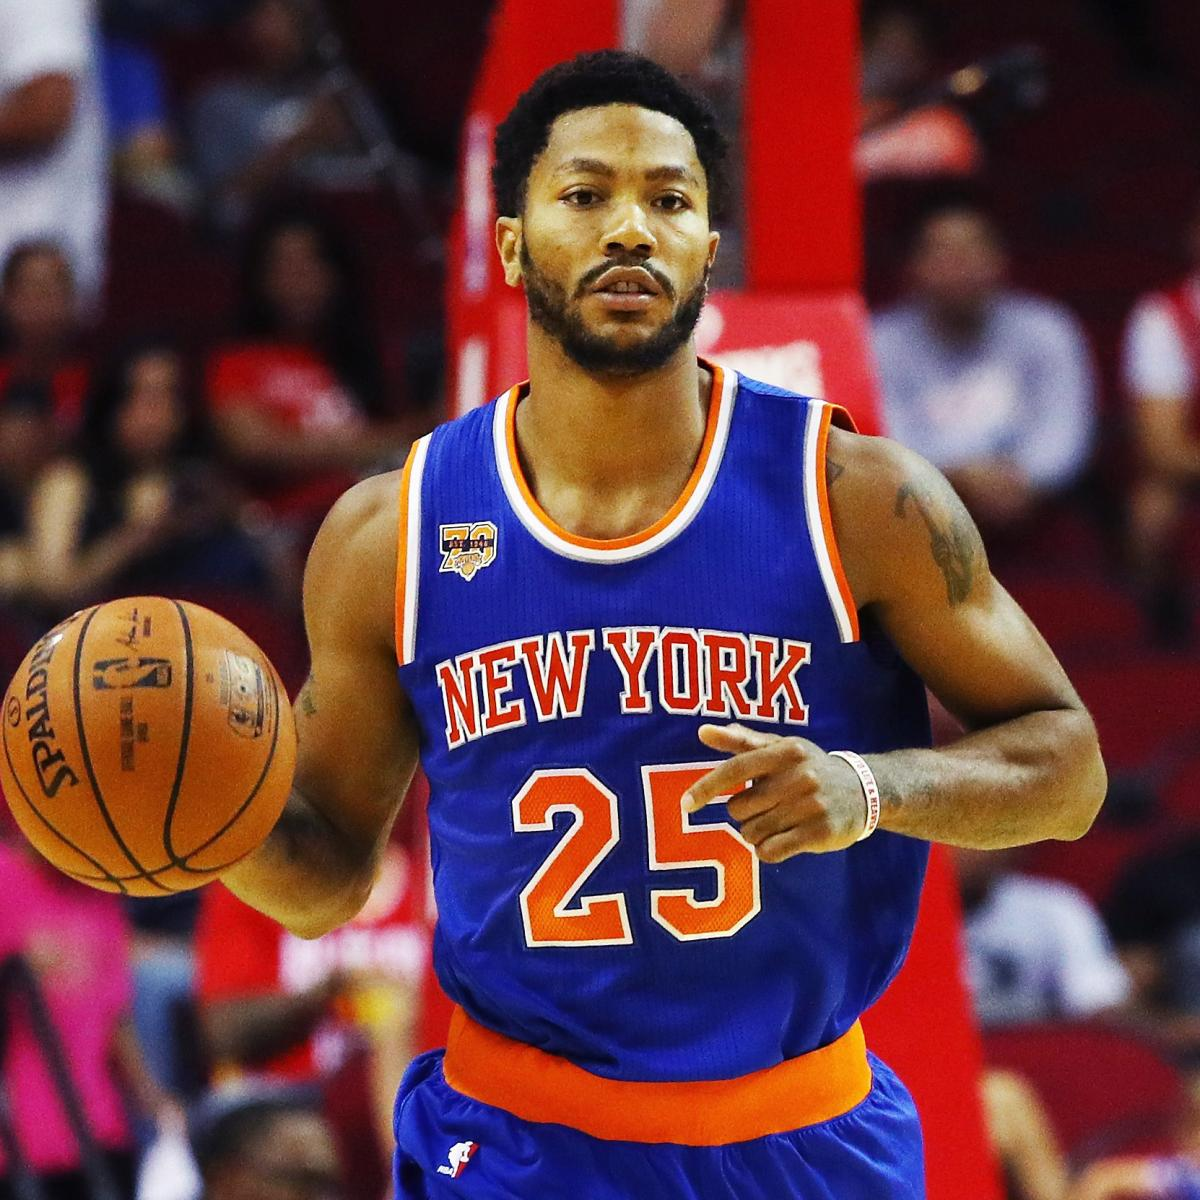 With Ugly Civil Trial Over, Derrick Rose Looks to Save a Career in ...